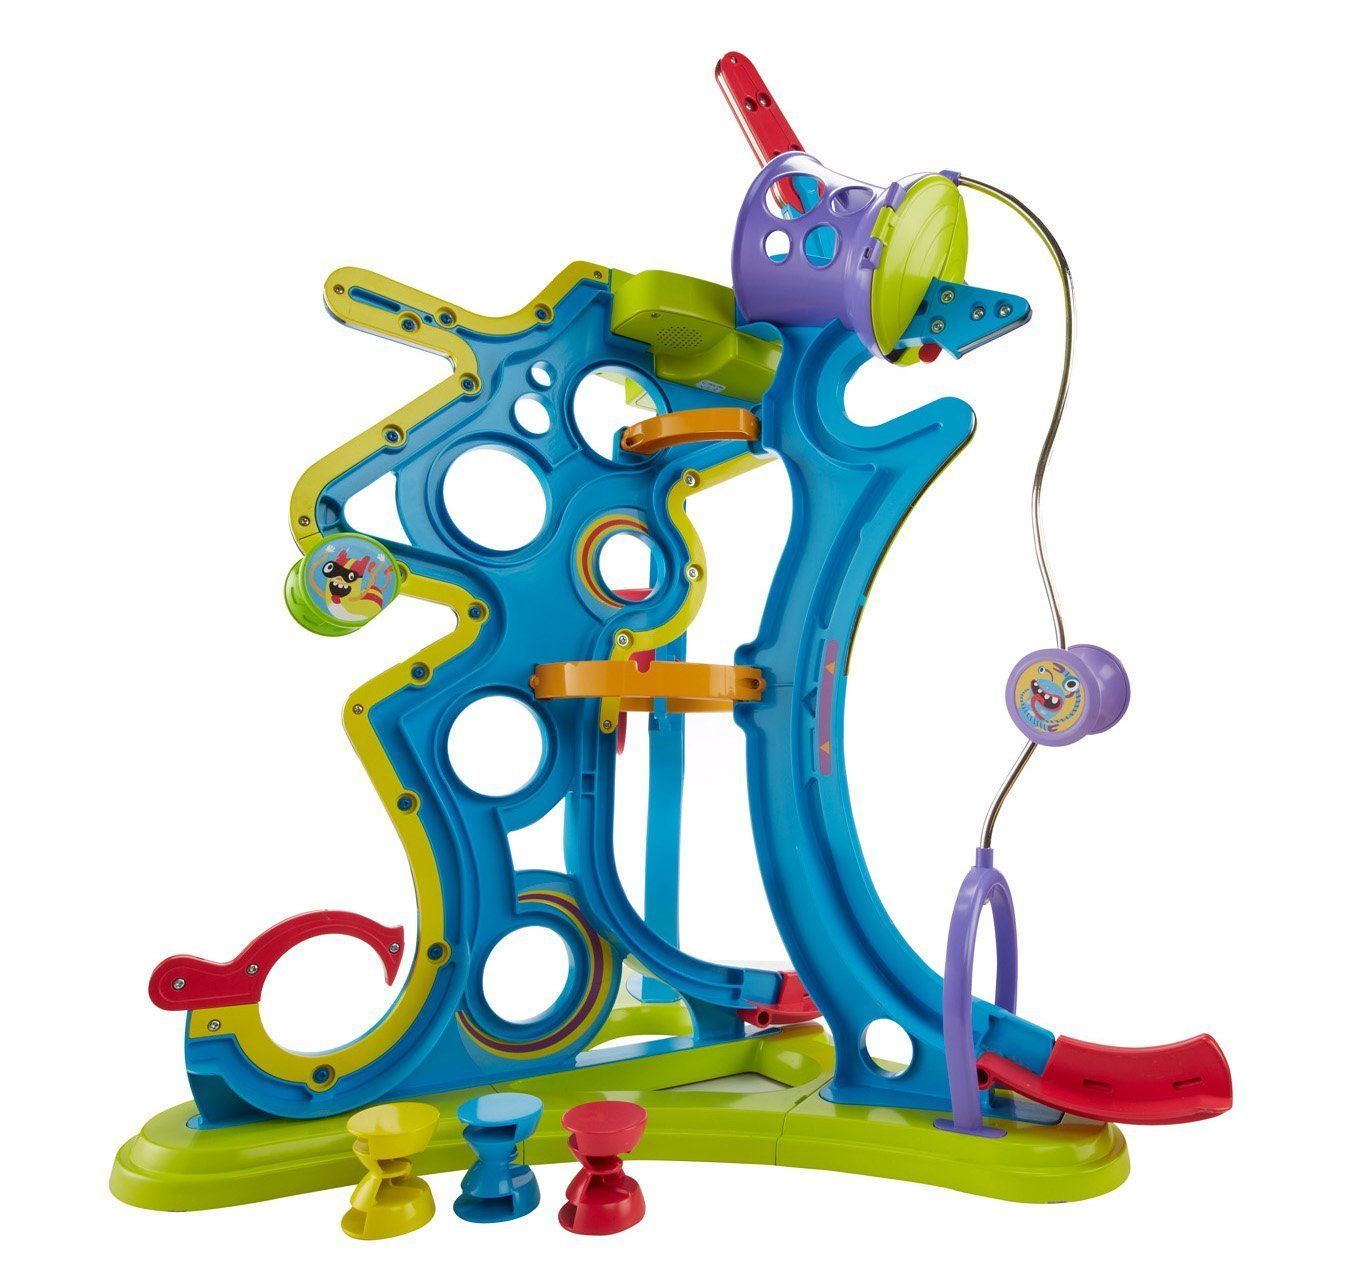 Amazon Com Fisher Price Spinnyos Giant Yo Ller Coaster Toys Amp Games Fisher Price Learning Toys For Toddlers Kids Playing